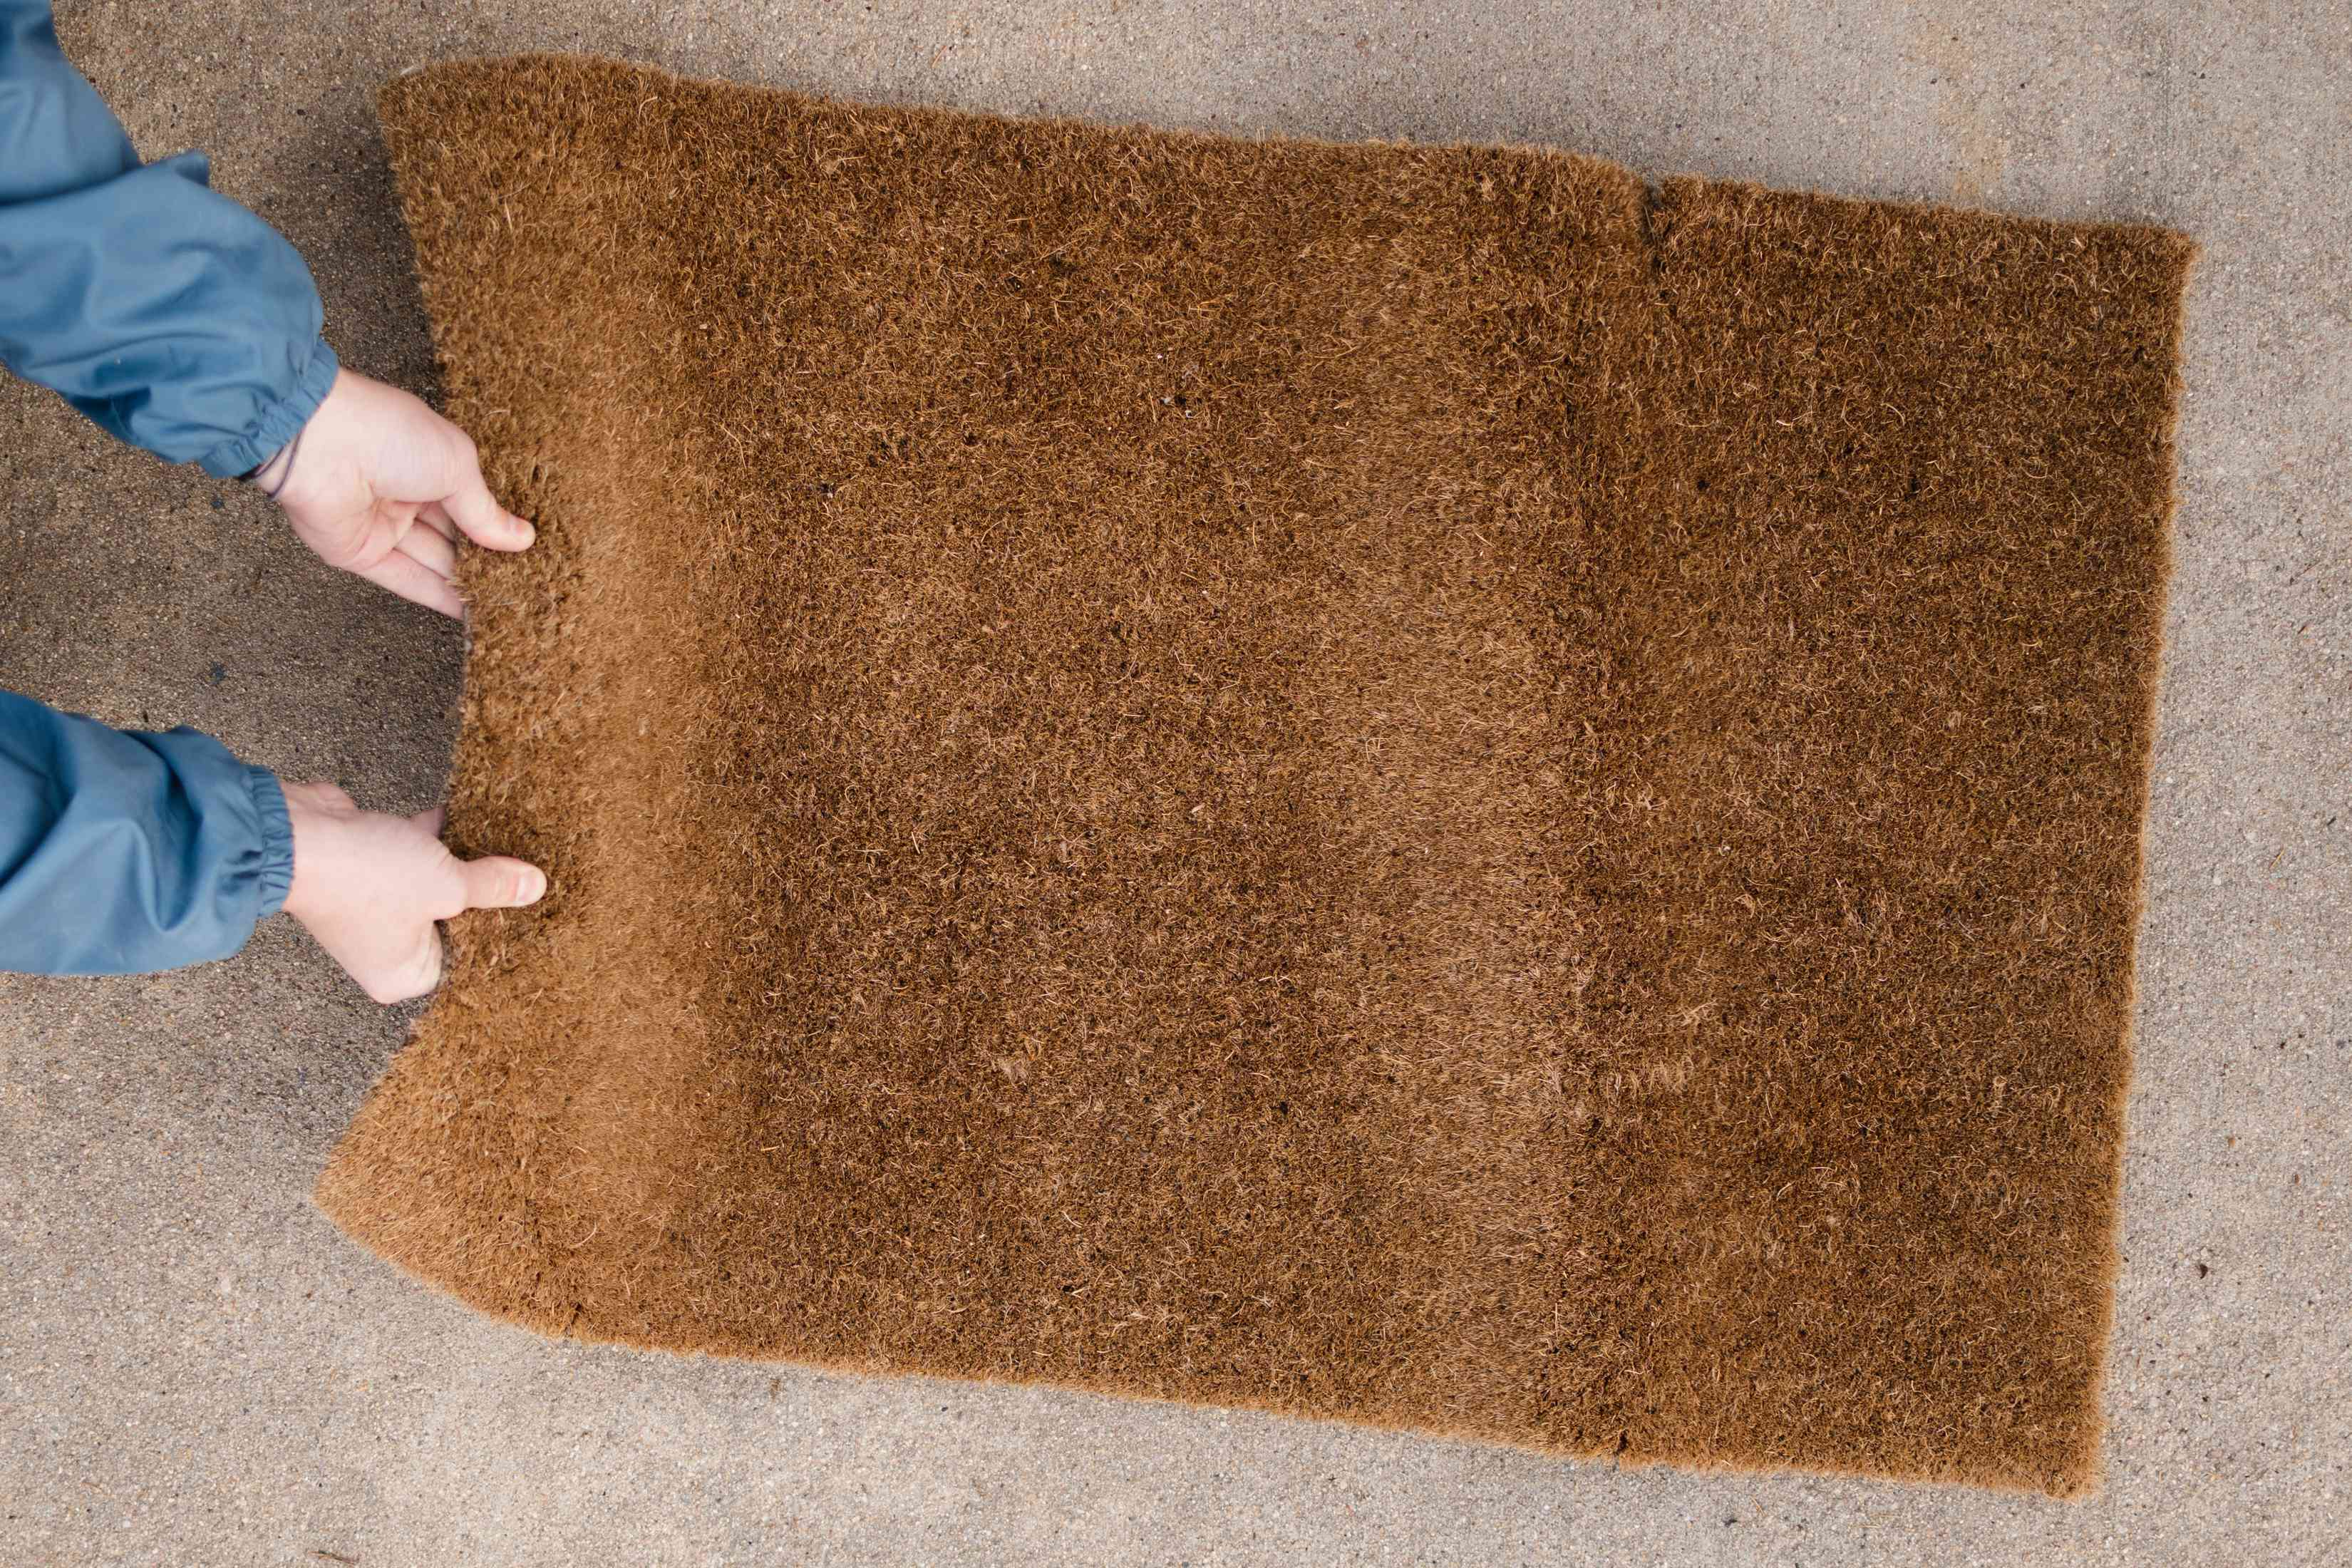 Brown doormat being shaked by hand to remove dirt